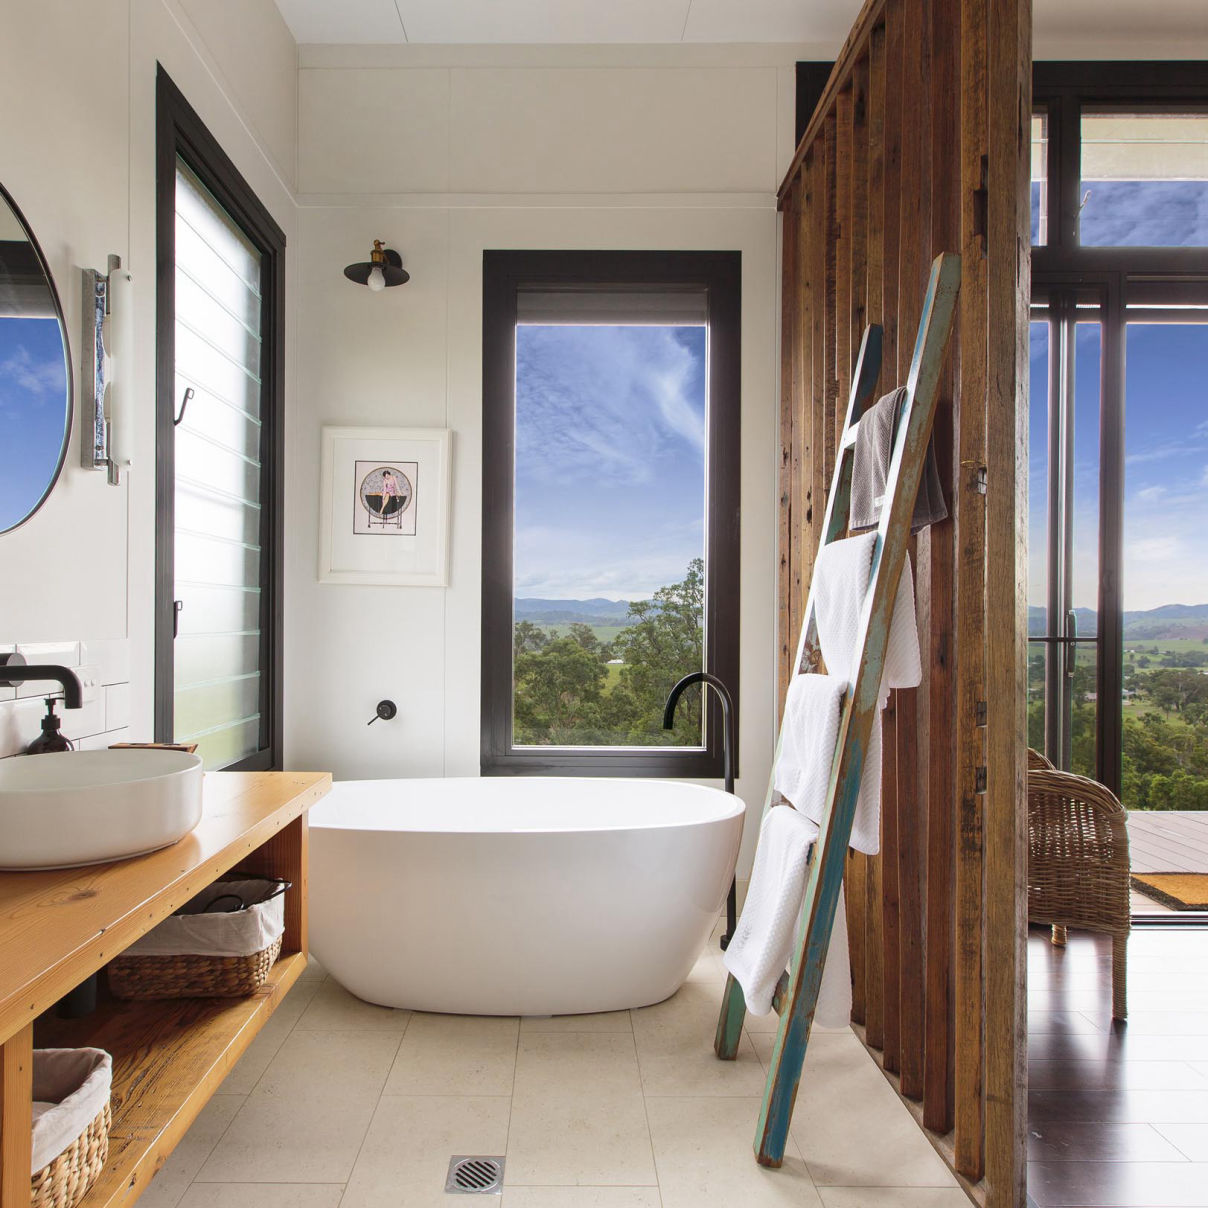 This MAAP House bathroom contains a freestanding bathtub with feature timber screen and recycled towel ladder